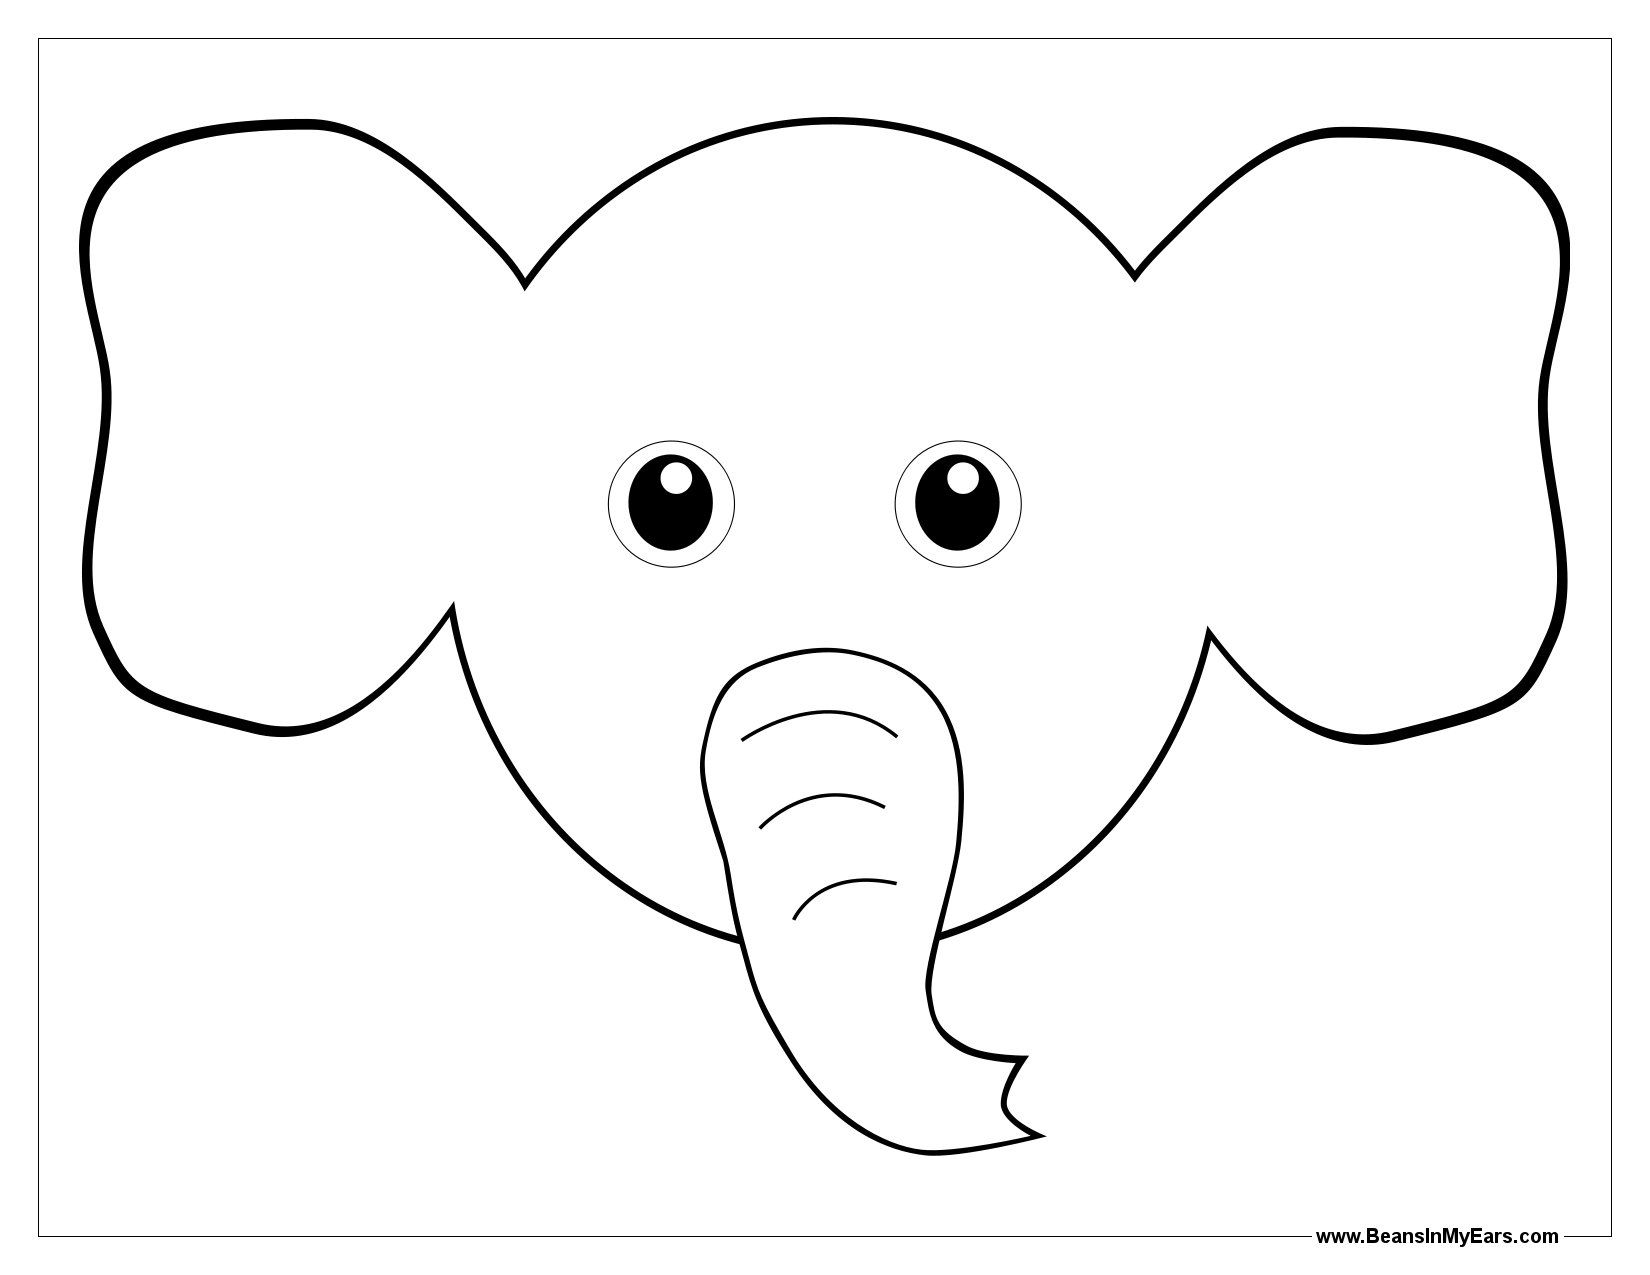 Animal Ears coloring #9, Download drawings